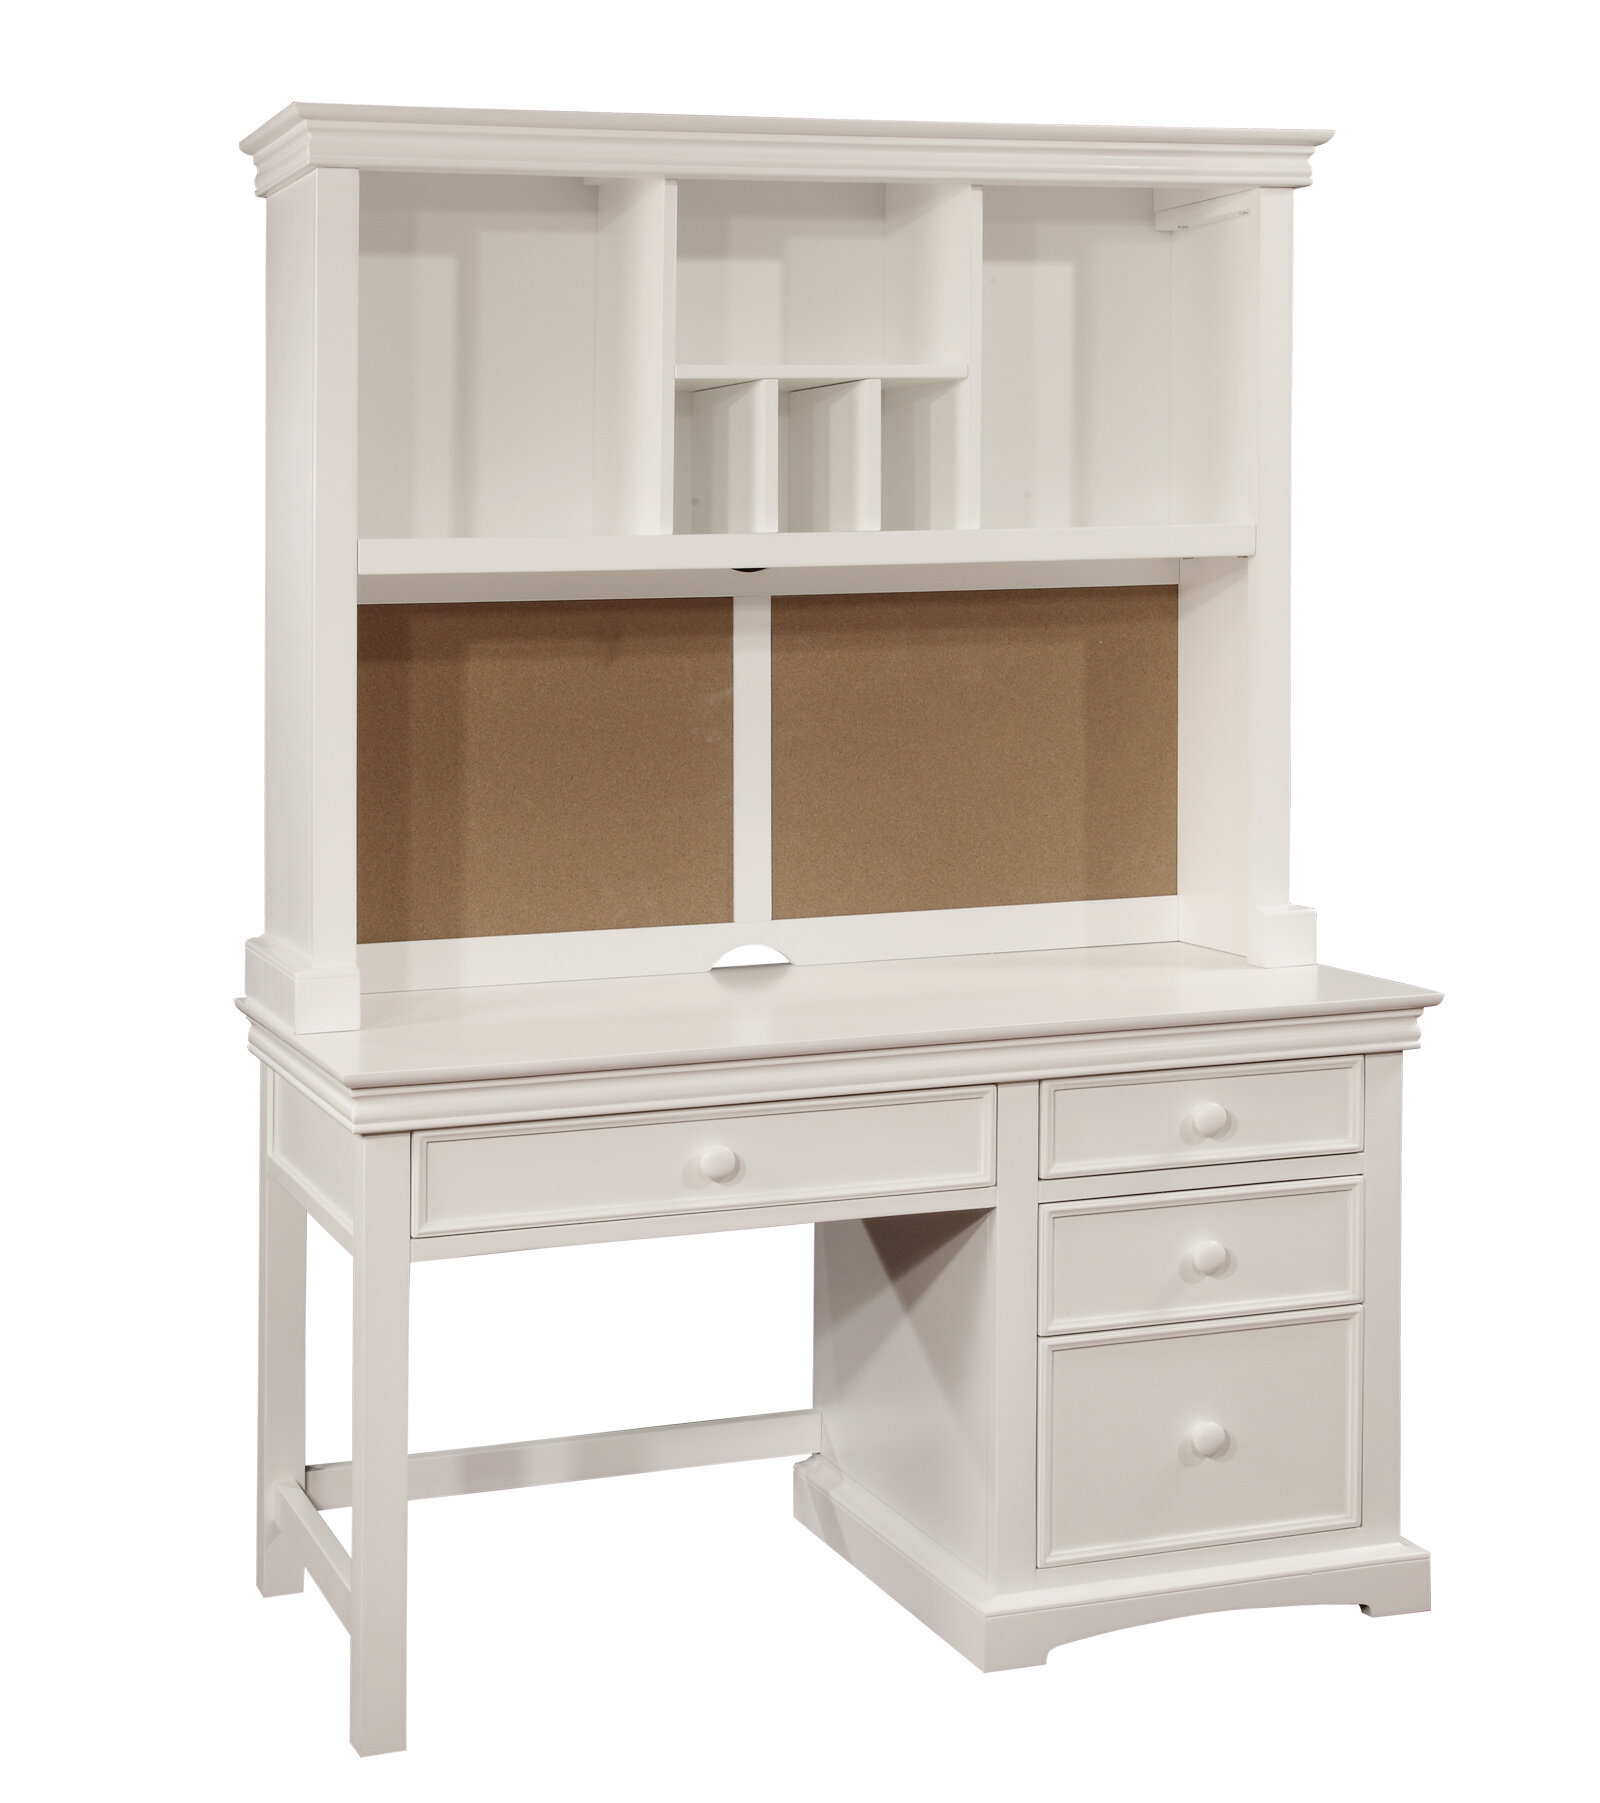 bolton furniture cambridge wood pedestal desk with hutch and 4 drawers ebay